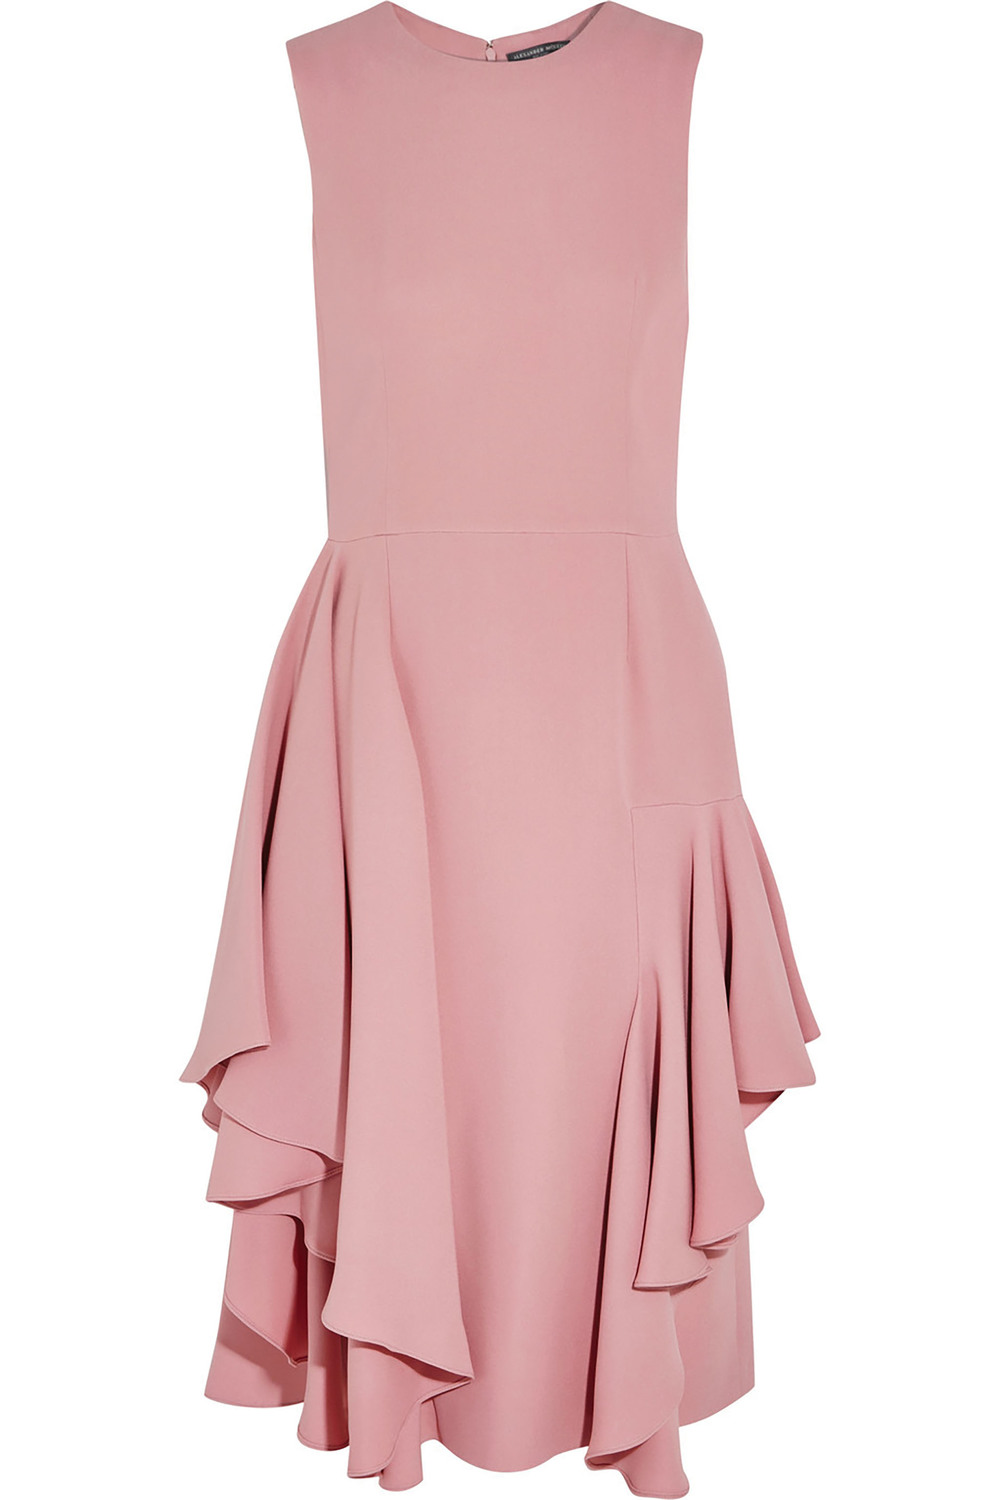 Alexander McQueen Ruffled Silk Dress $3,419